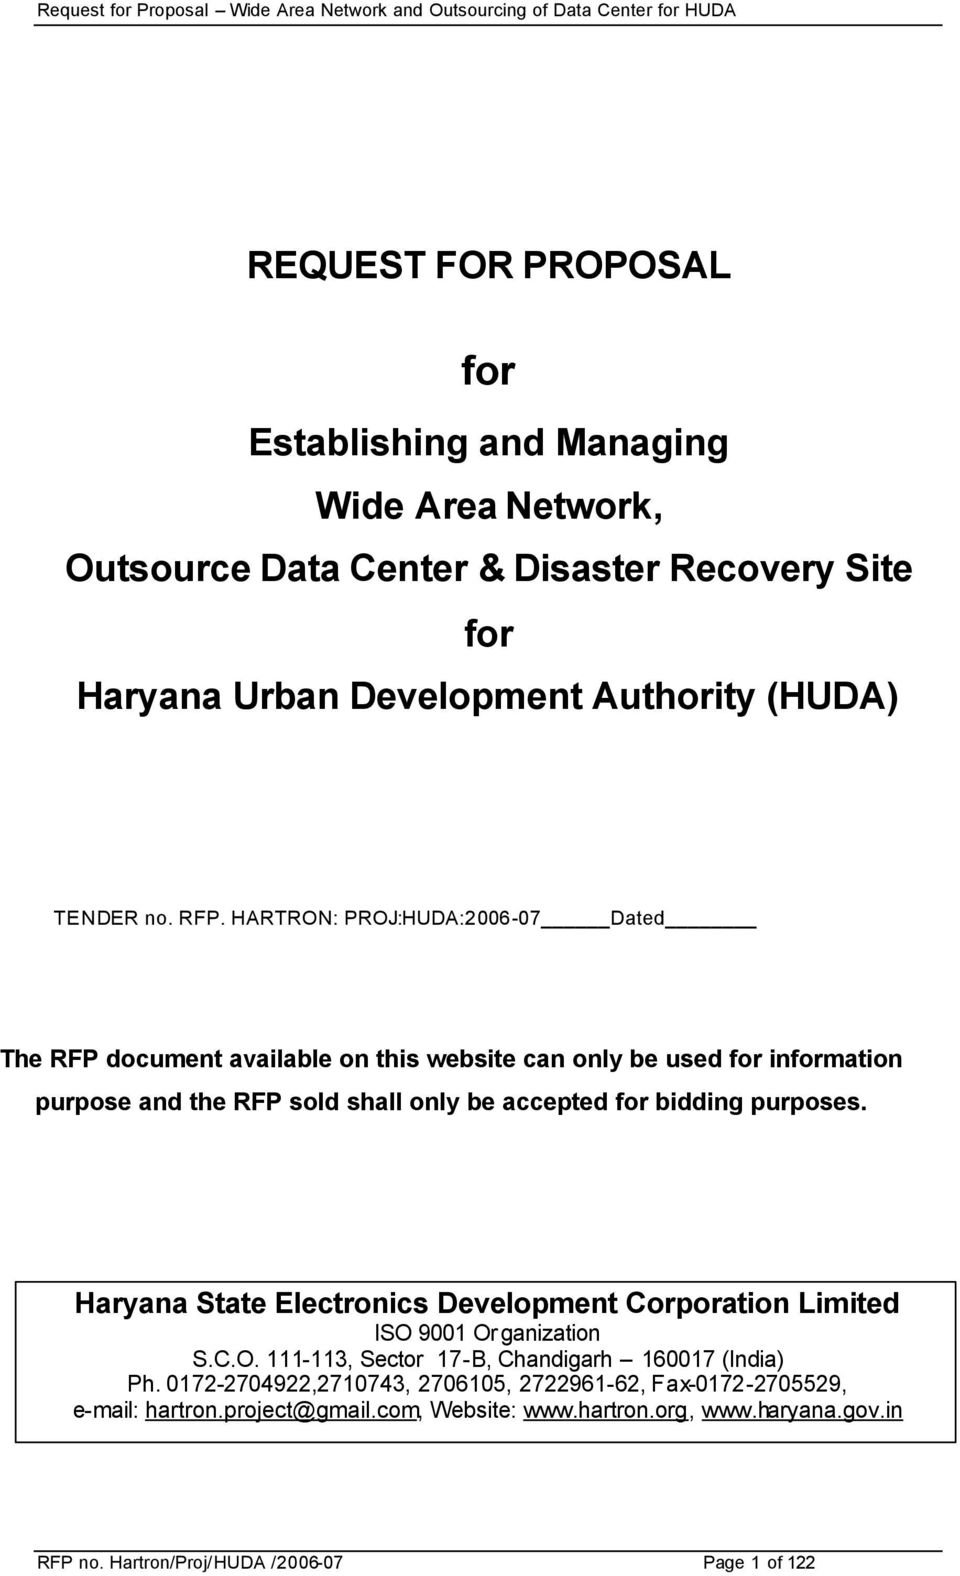 HARTRON: PROJ:HUDA:2006-07 Dated The RFP document available on this website can only be used for information purpose and the RFP sold shall only be accepted for bidding